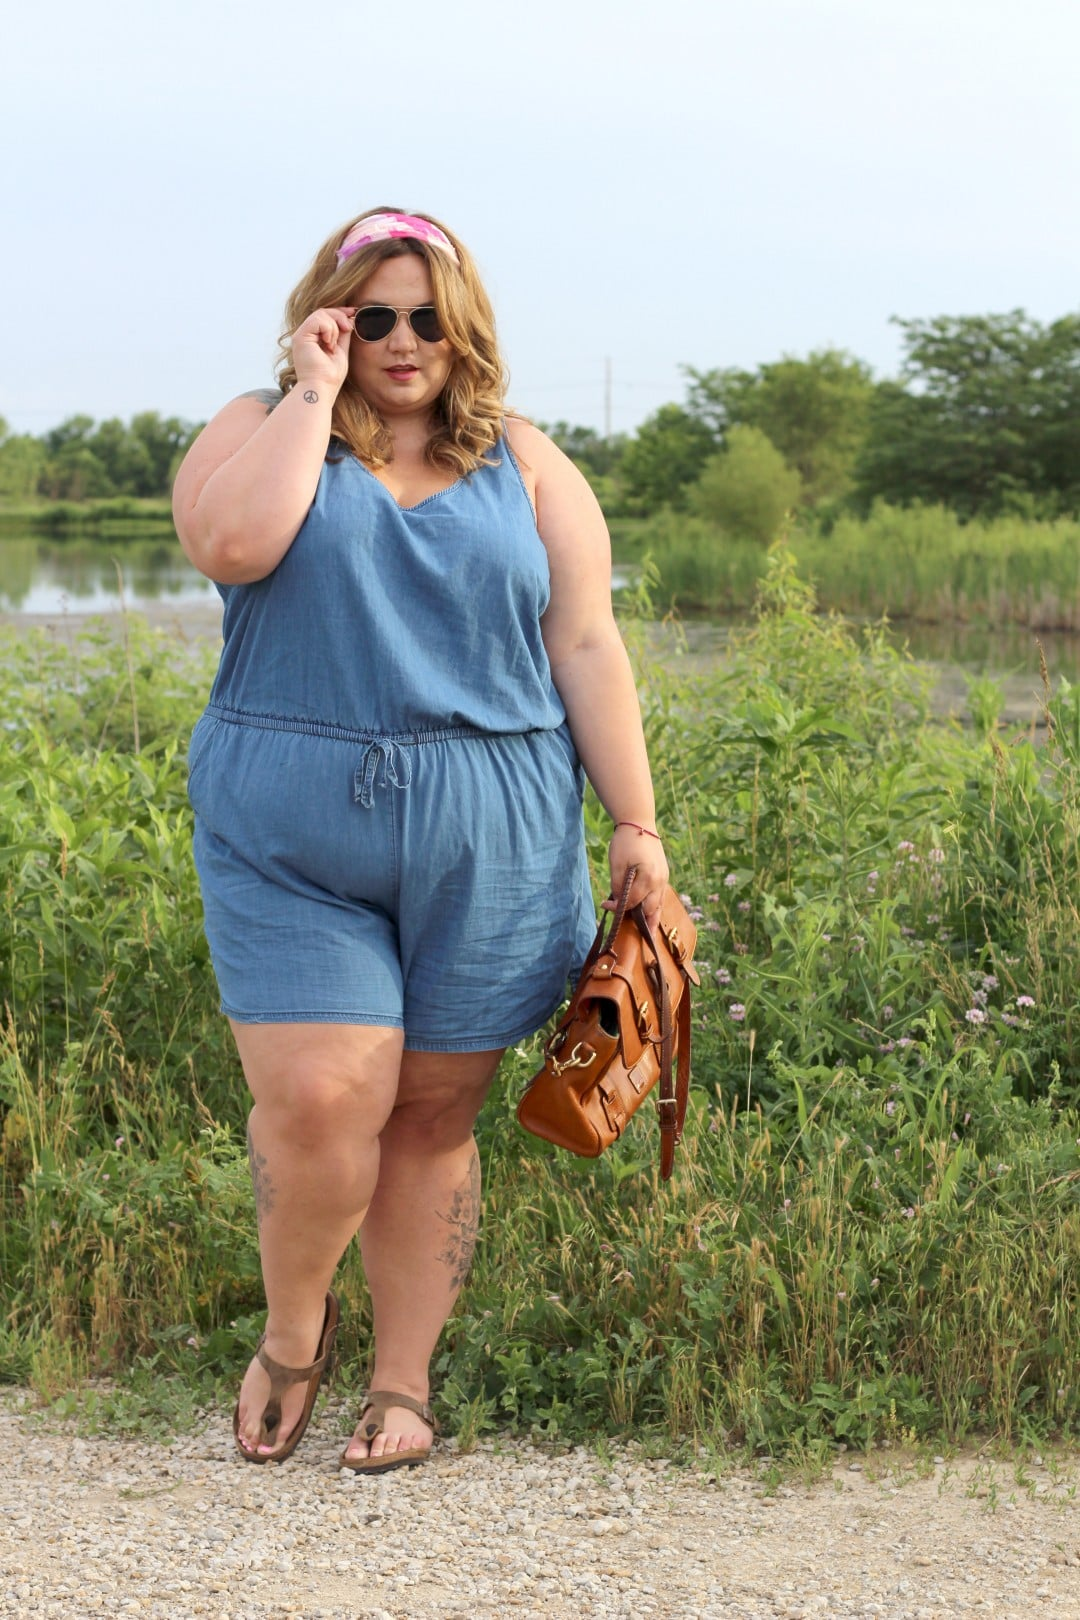 10 Compelling Reasons For Dating A Fat Girl New